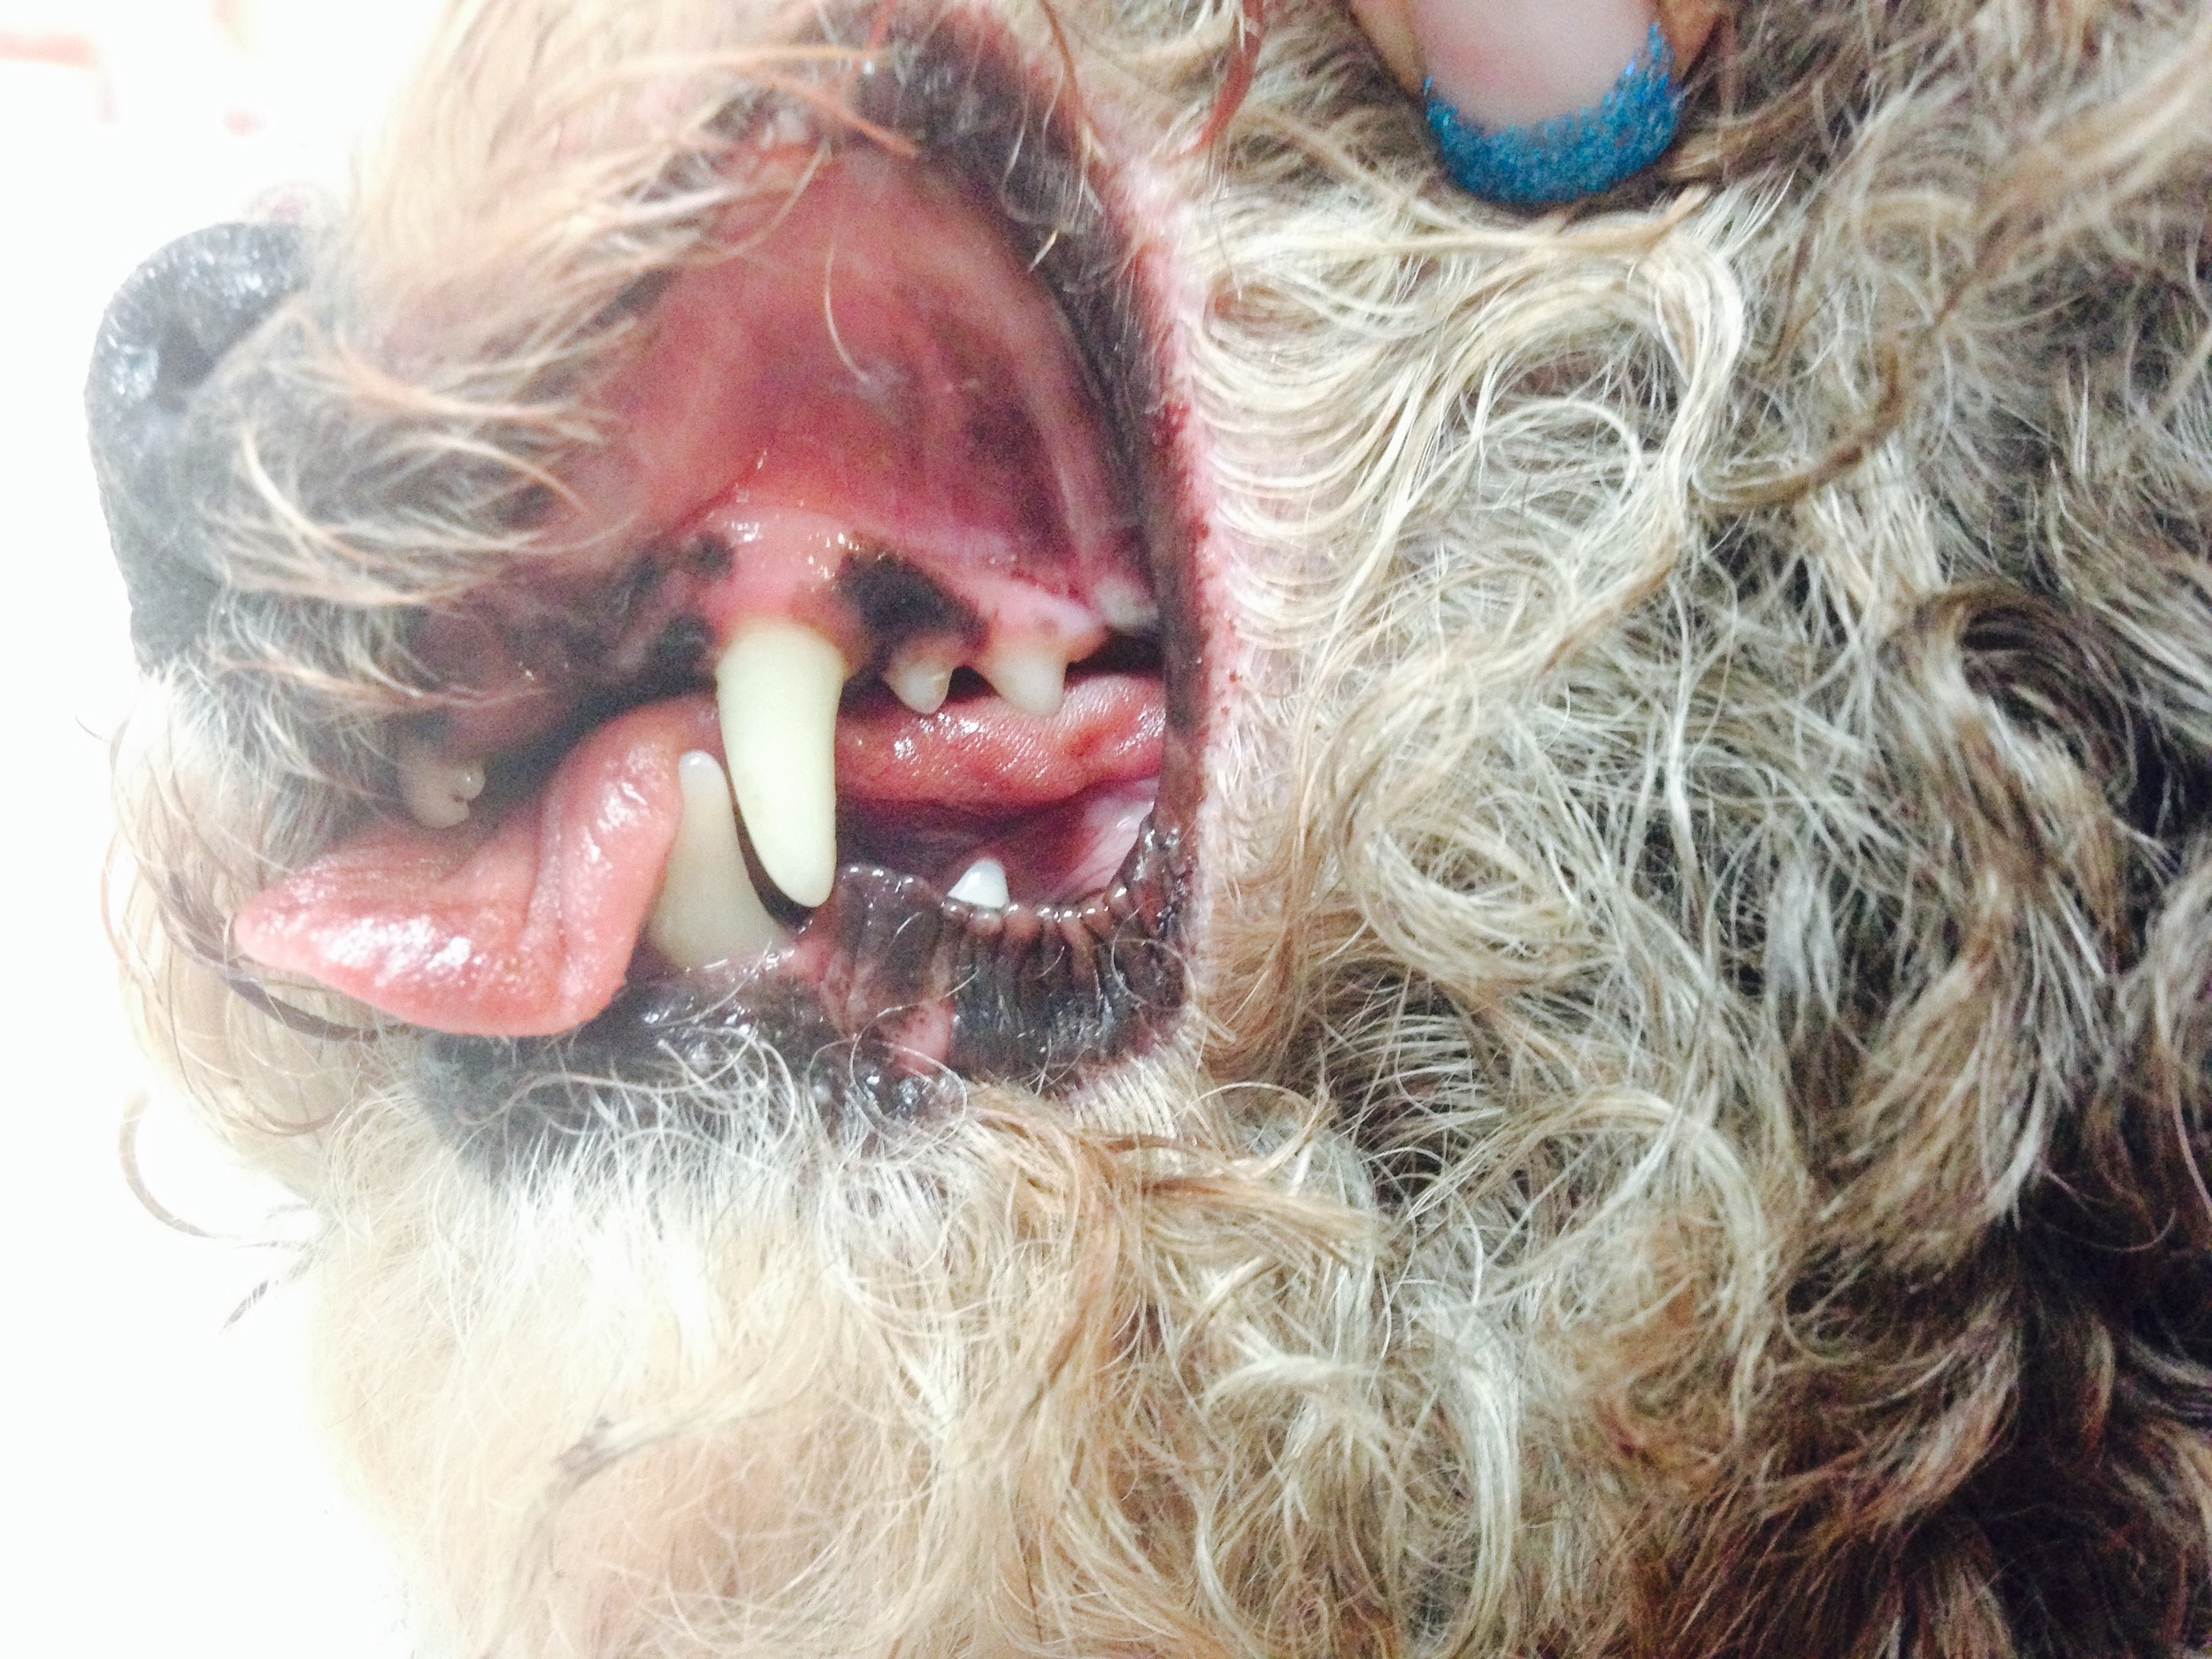 After the dental has been complete, you can see how clean Zenia's teeth are now. Antibiotics and pain medication are sent home with her for her recovery. She is such a cute little dog, and was an excellent patient!